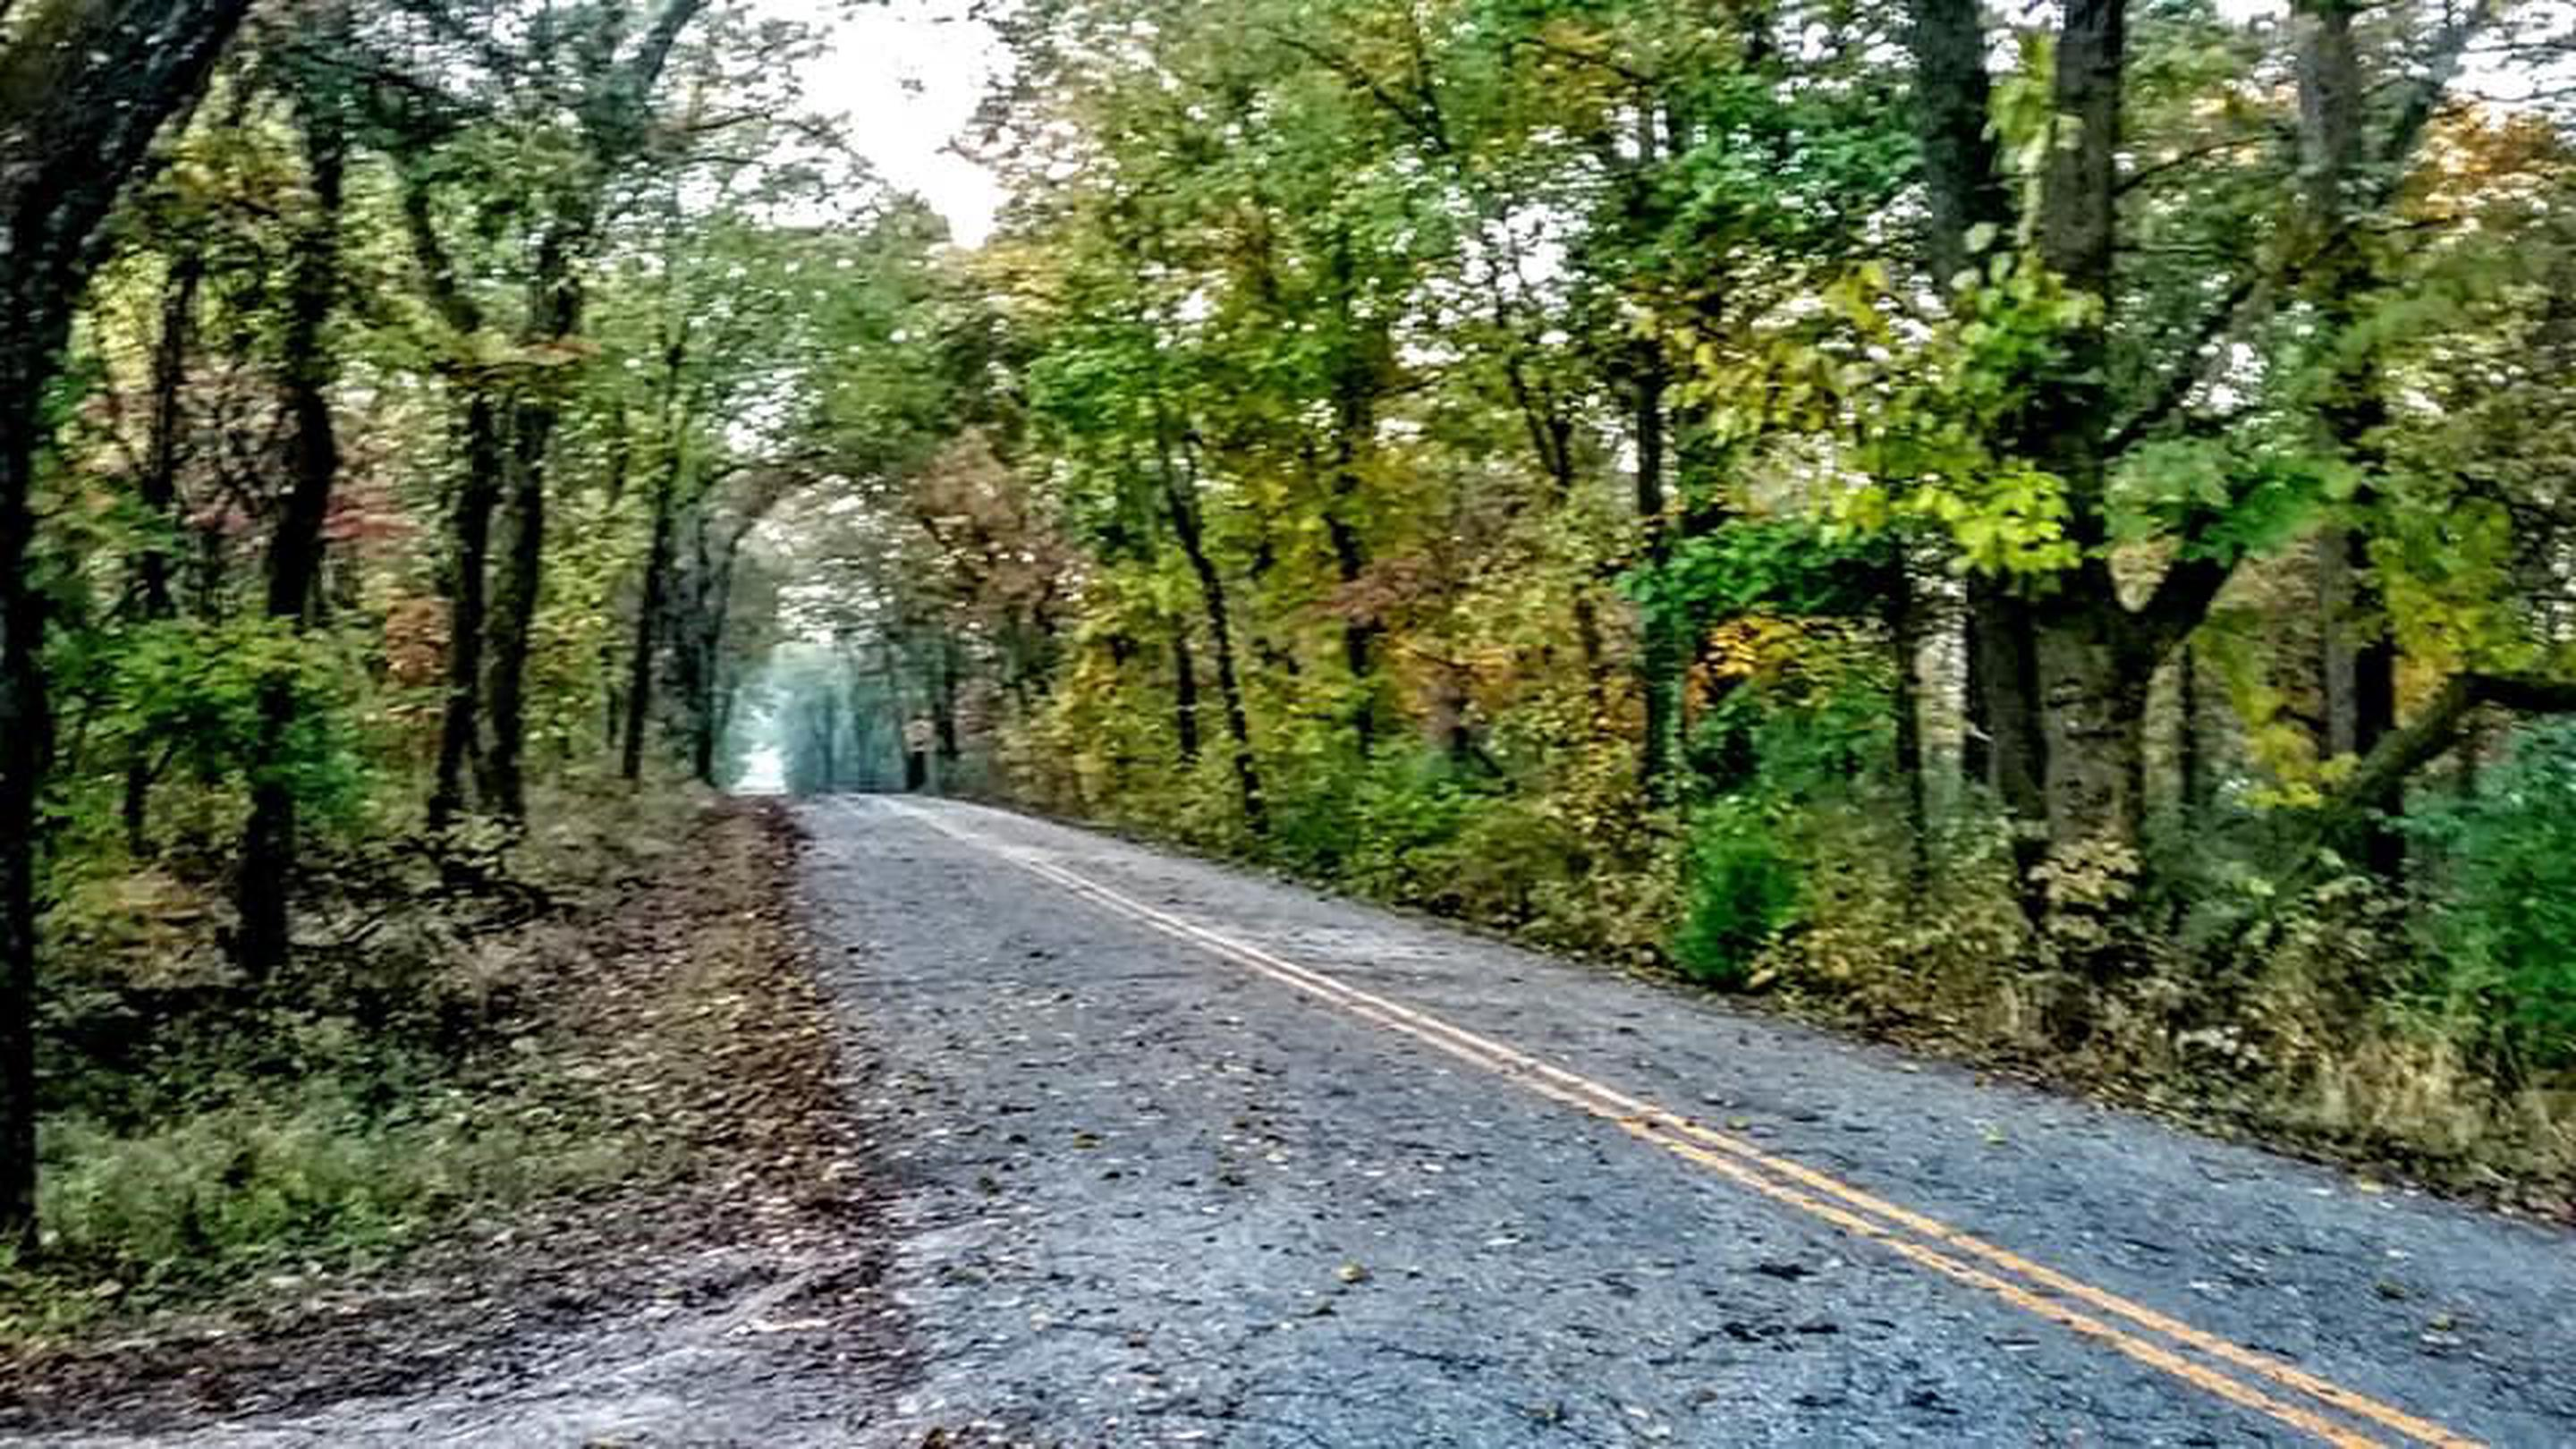 Park Tour Road in FallPark tour road in the fall.